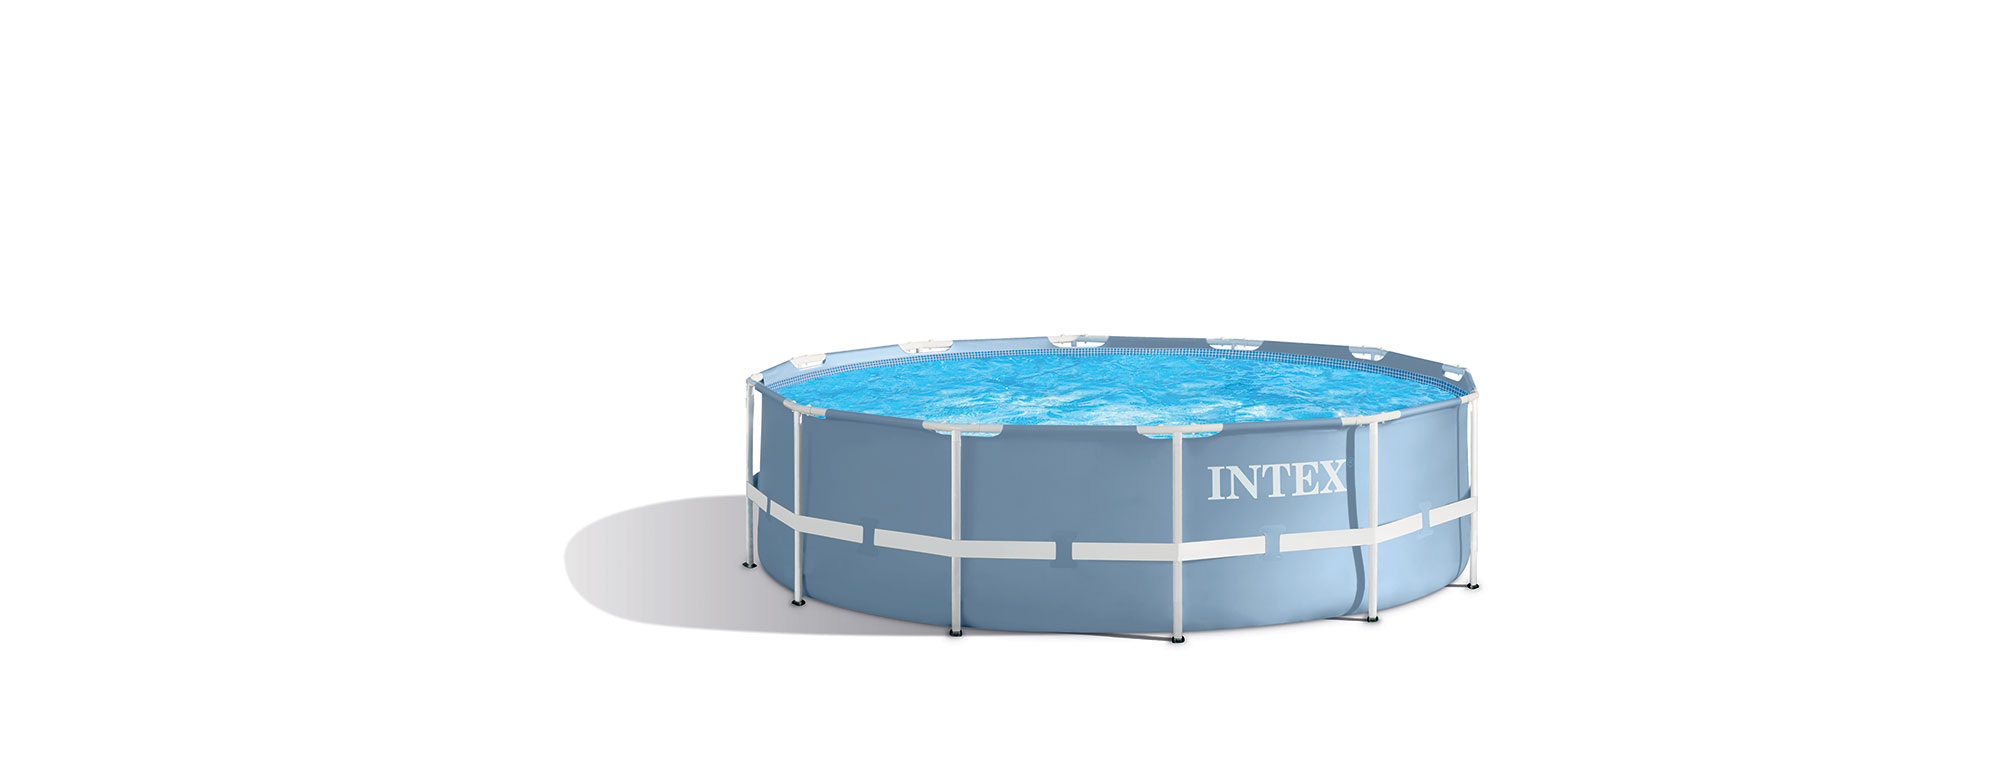 Installer ma piscine tubulaire ronde Intex